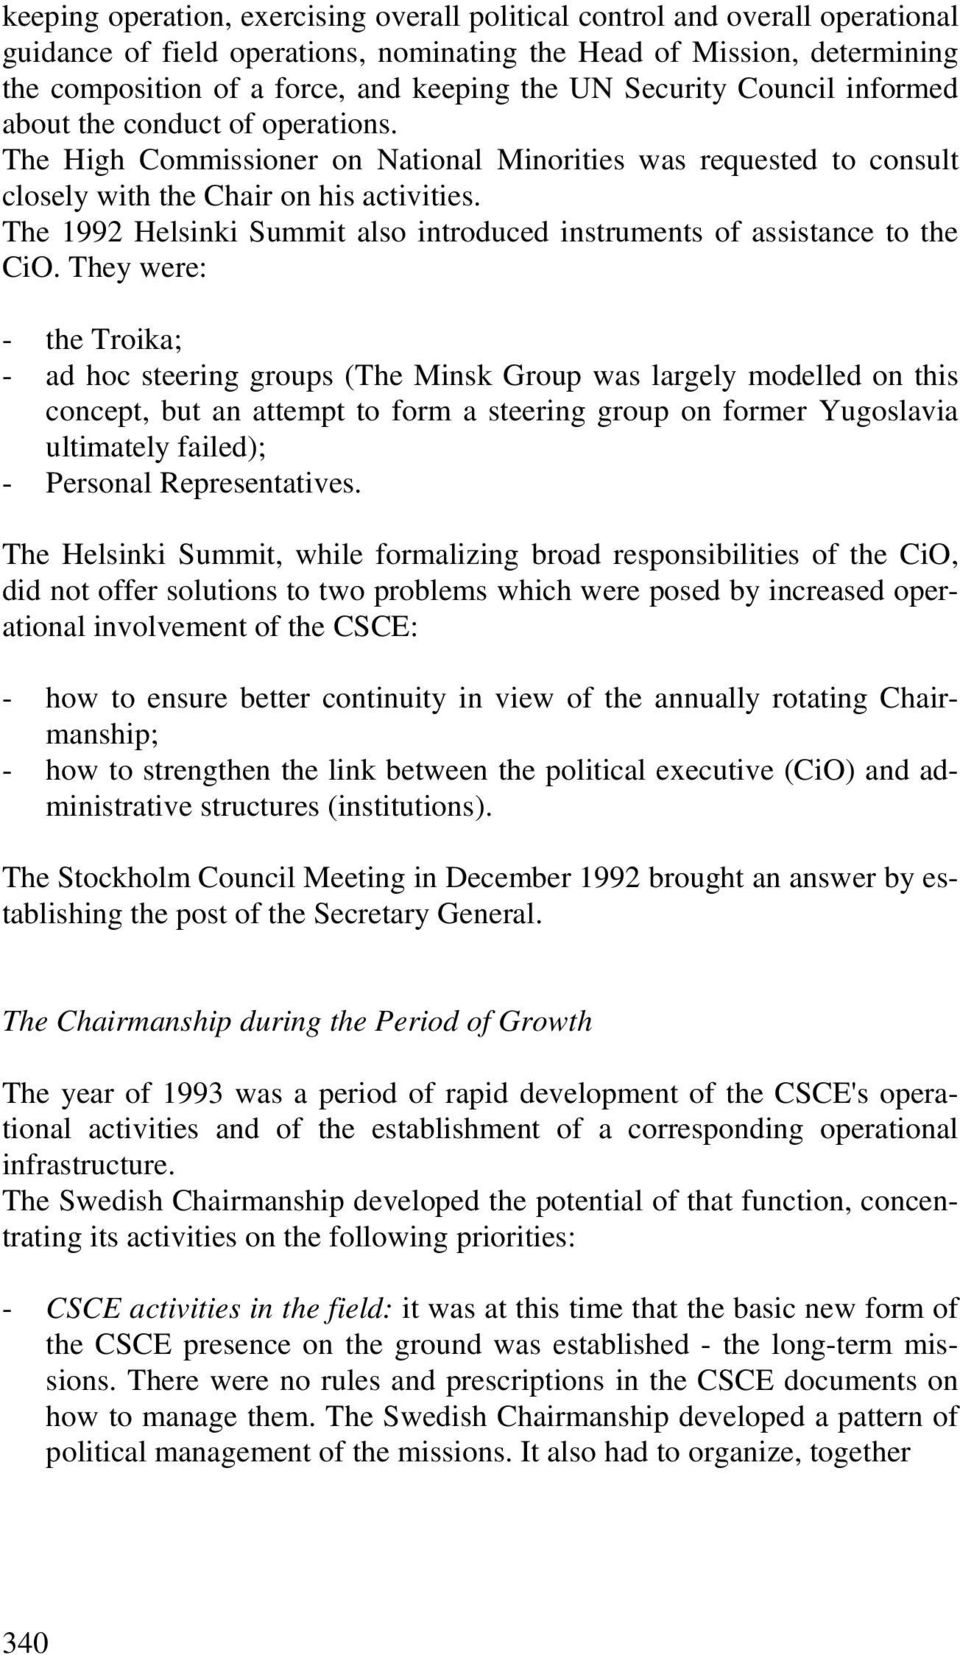 The 1992 Helsinki Summit also introduced instruments of assistance to the CiO.